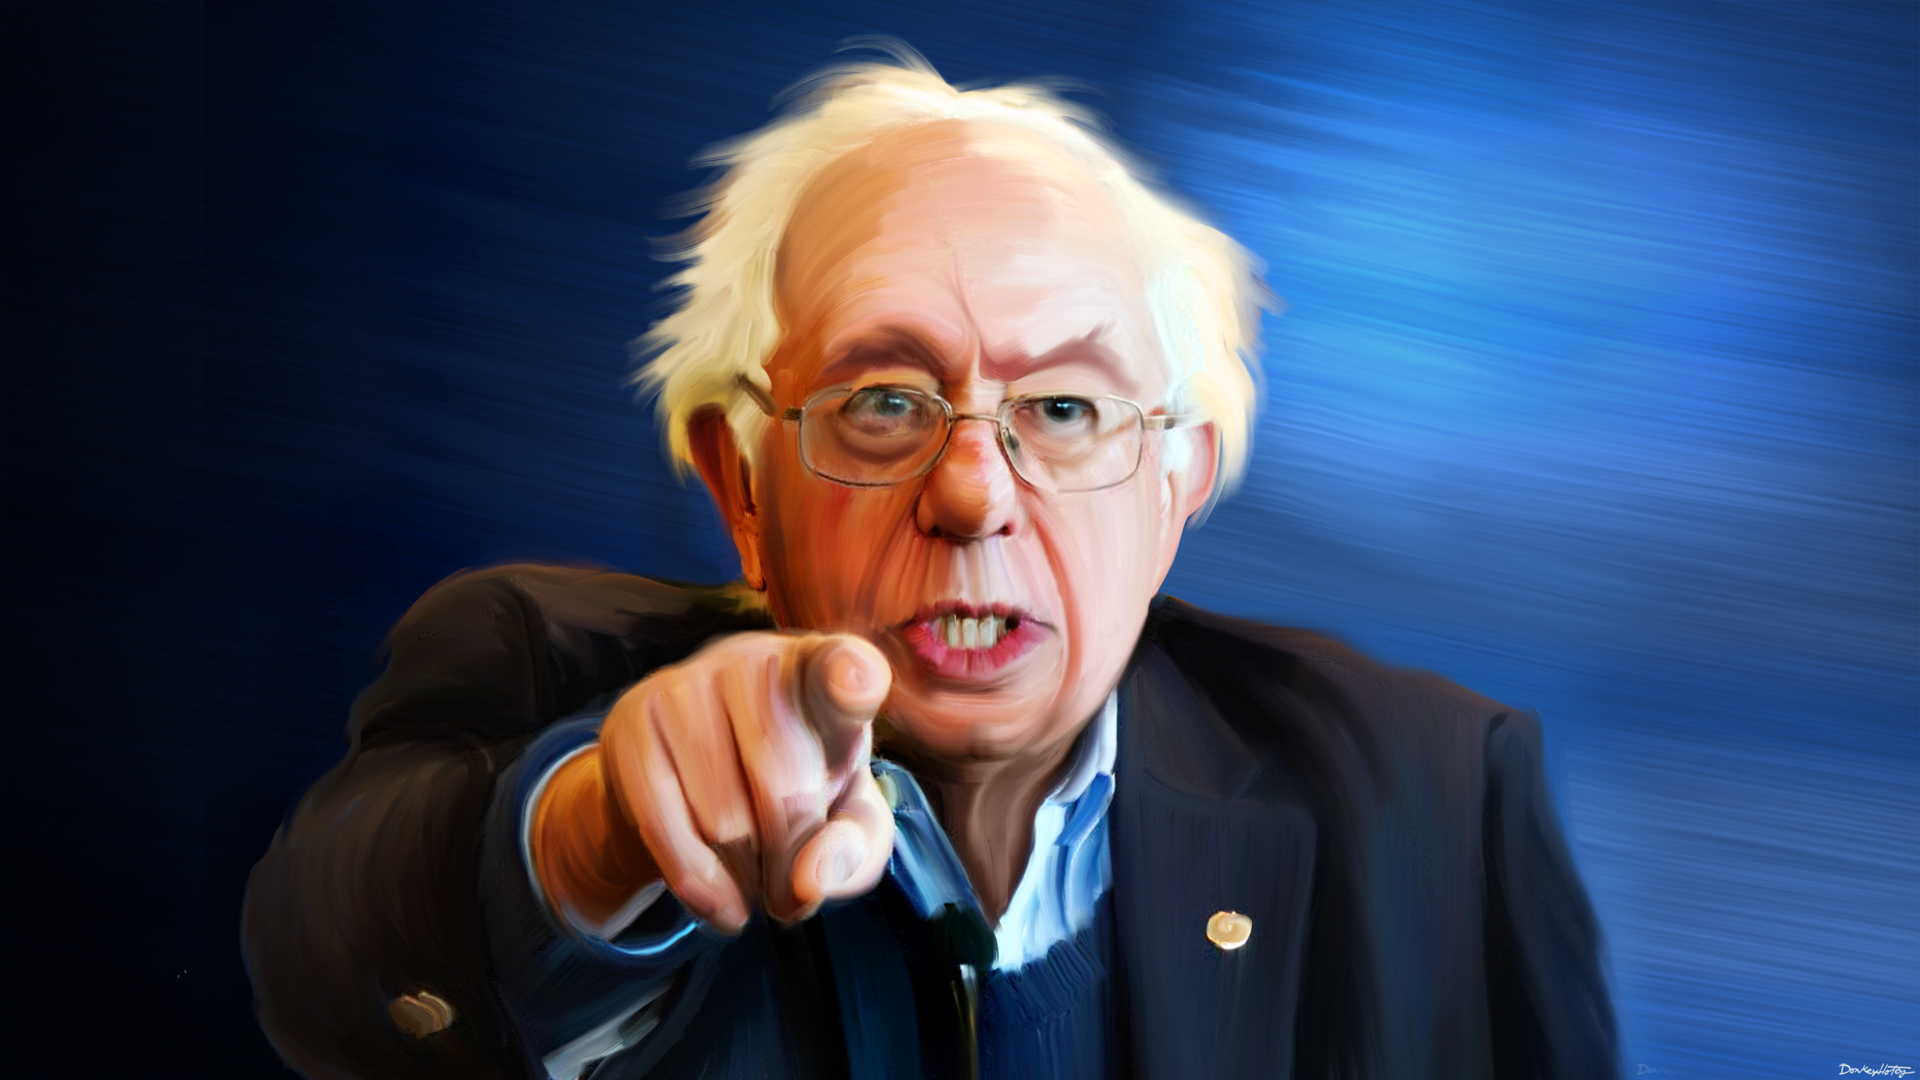 Bernie Sanders painted by Donkey Hotey